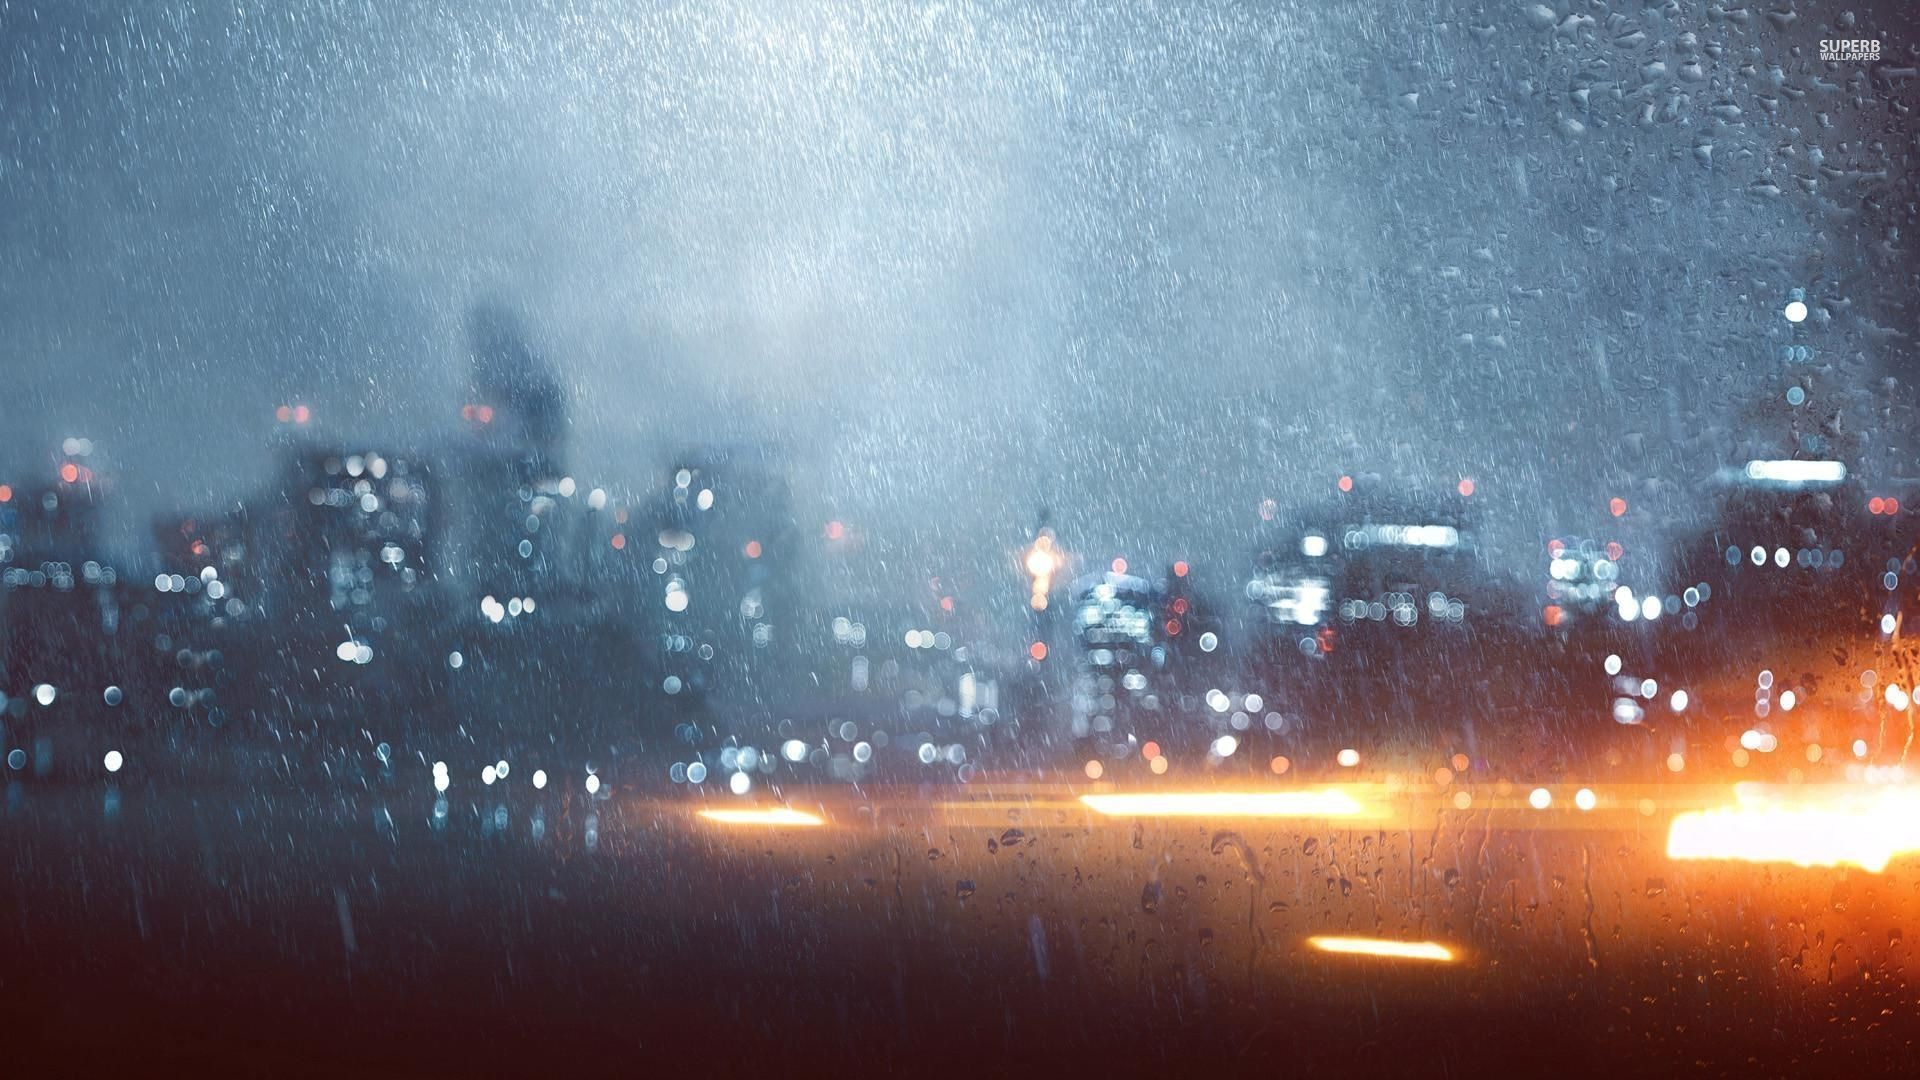 1920x1080 Battlefield 4 Sniper - Wallpapers UK - Backgrounds For all your Devices!